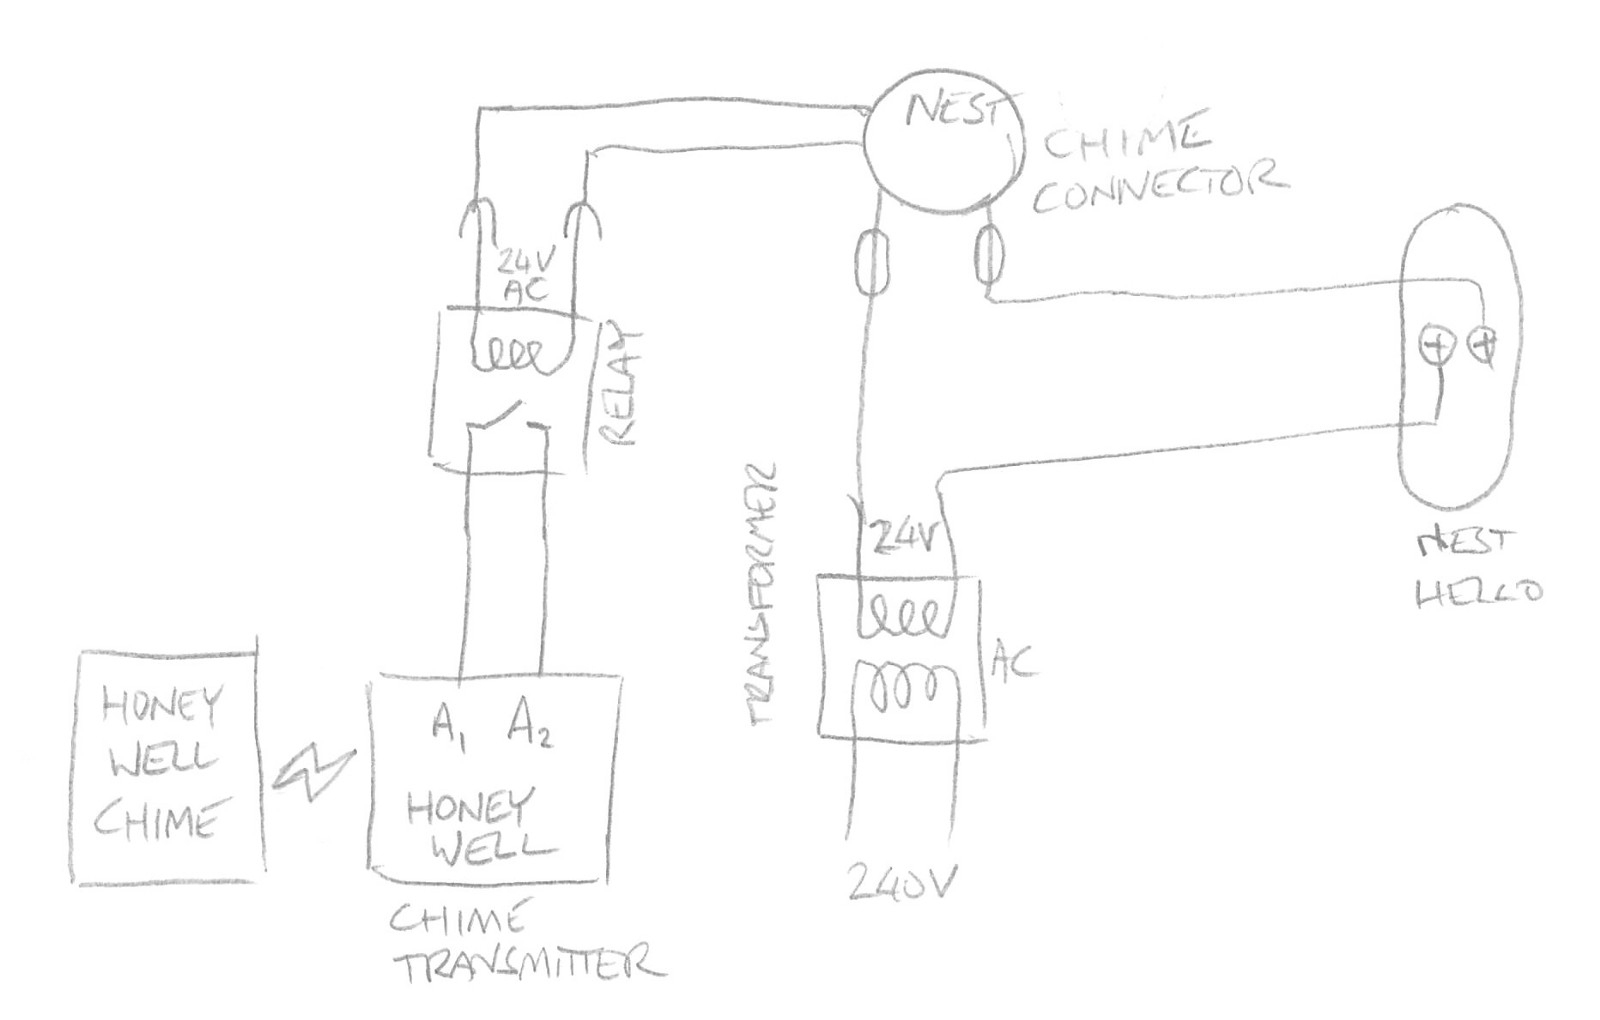 doorbell installation diagram